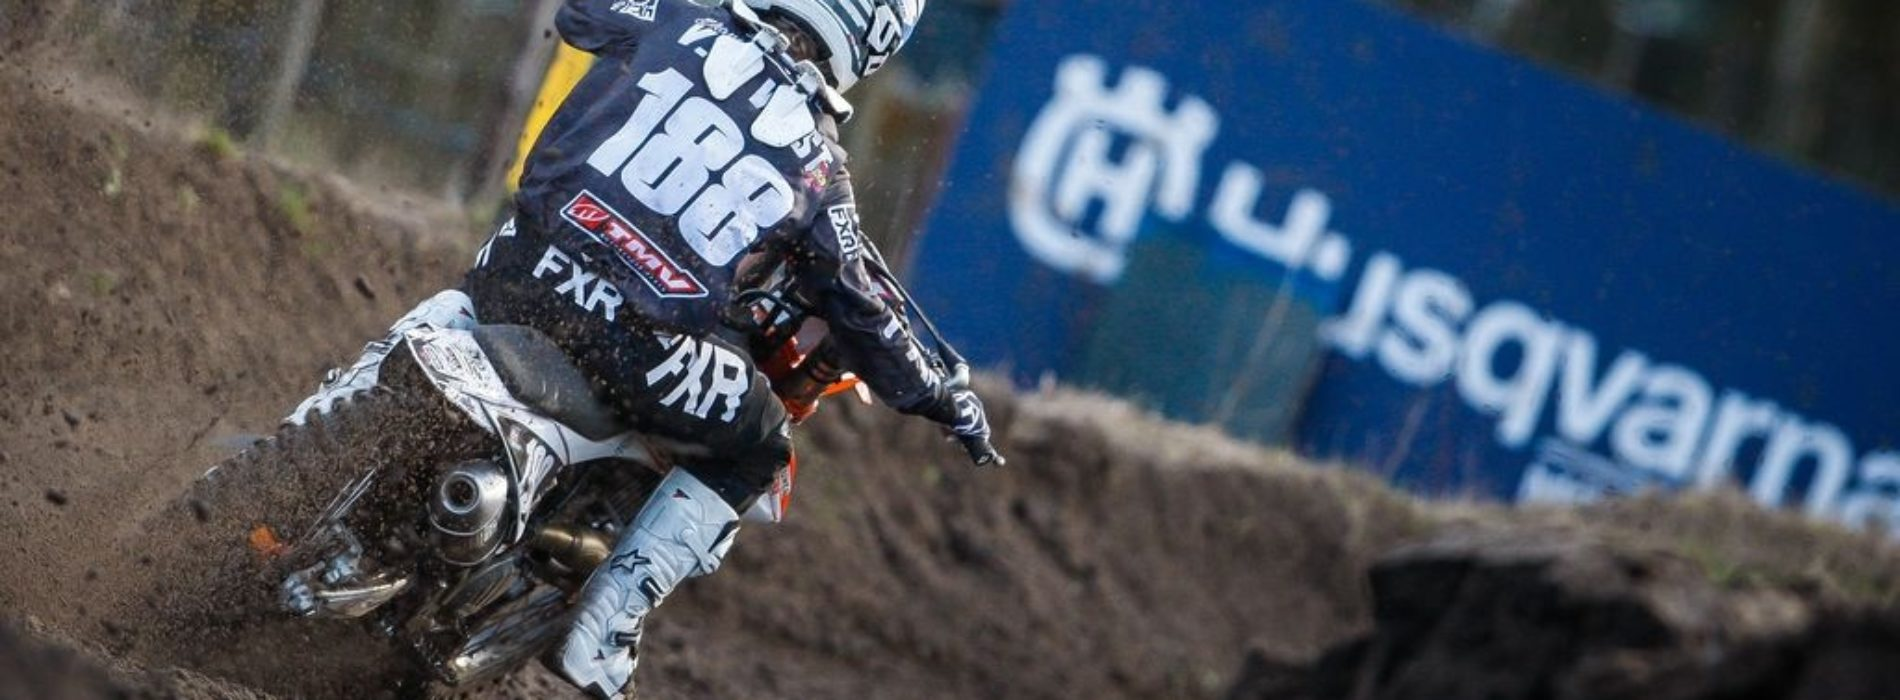 Shana van der Vlist makes remarkable recovery from wrist injury to finish 5th at WMX Round 2